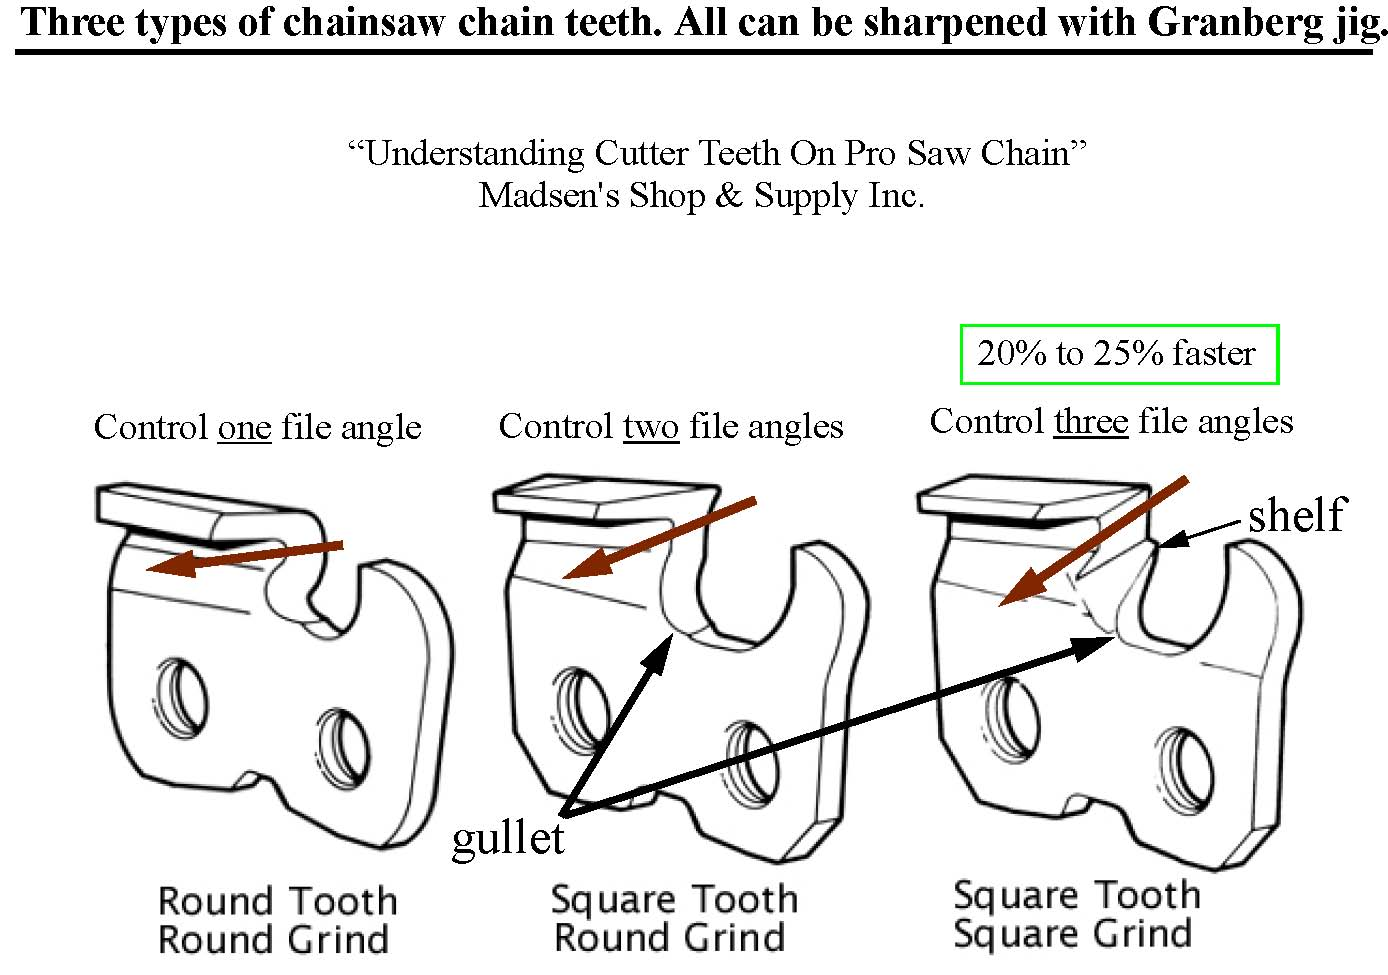 chainsaw chain diagram | Diarra